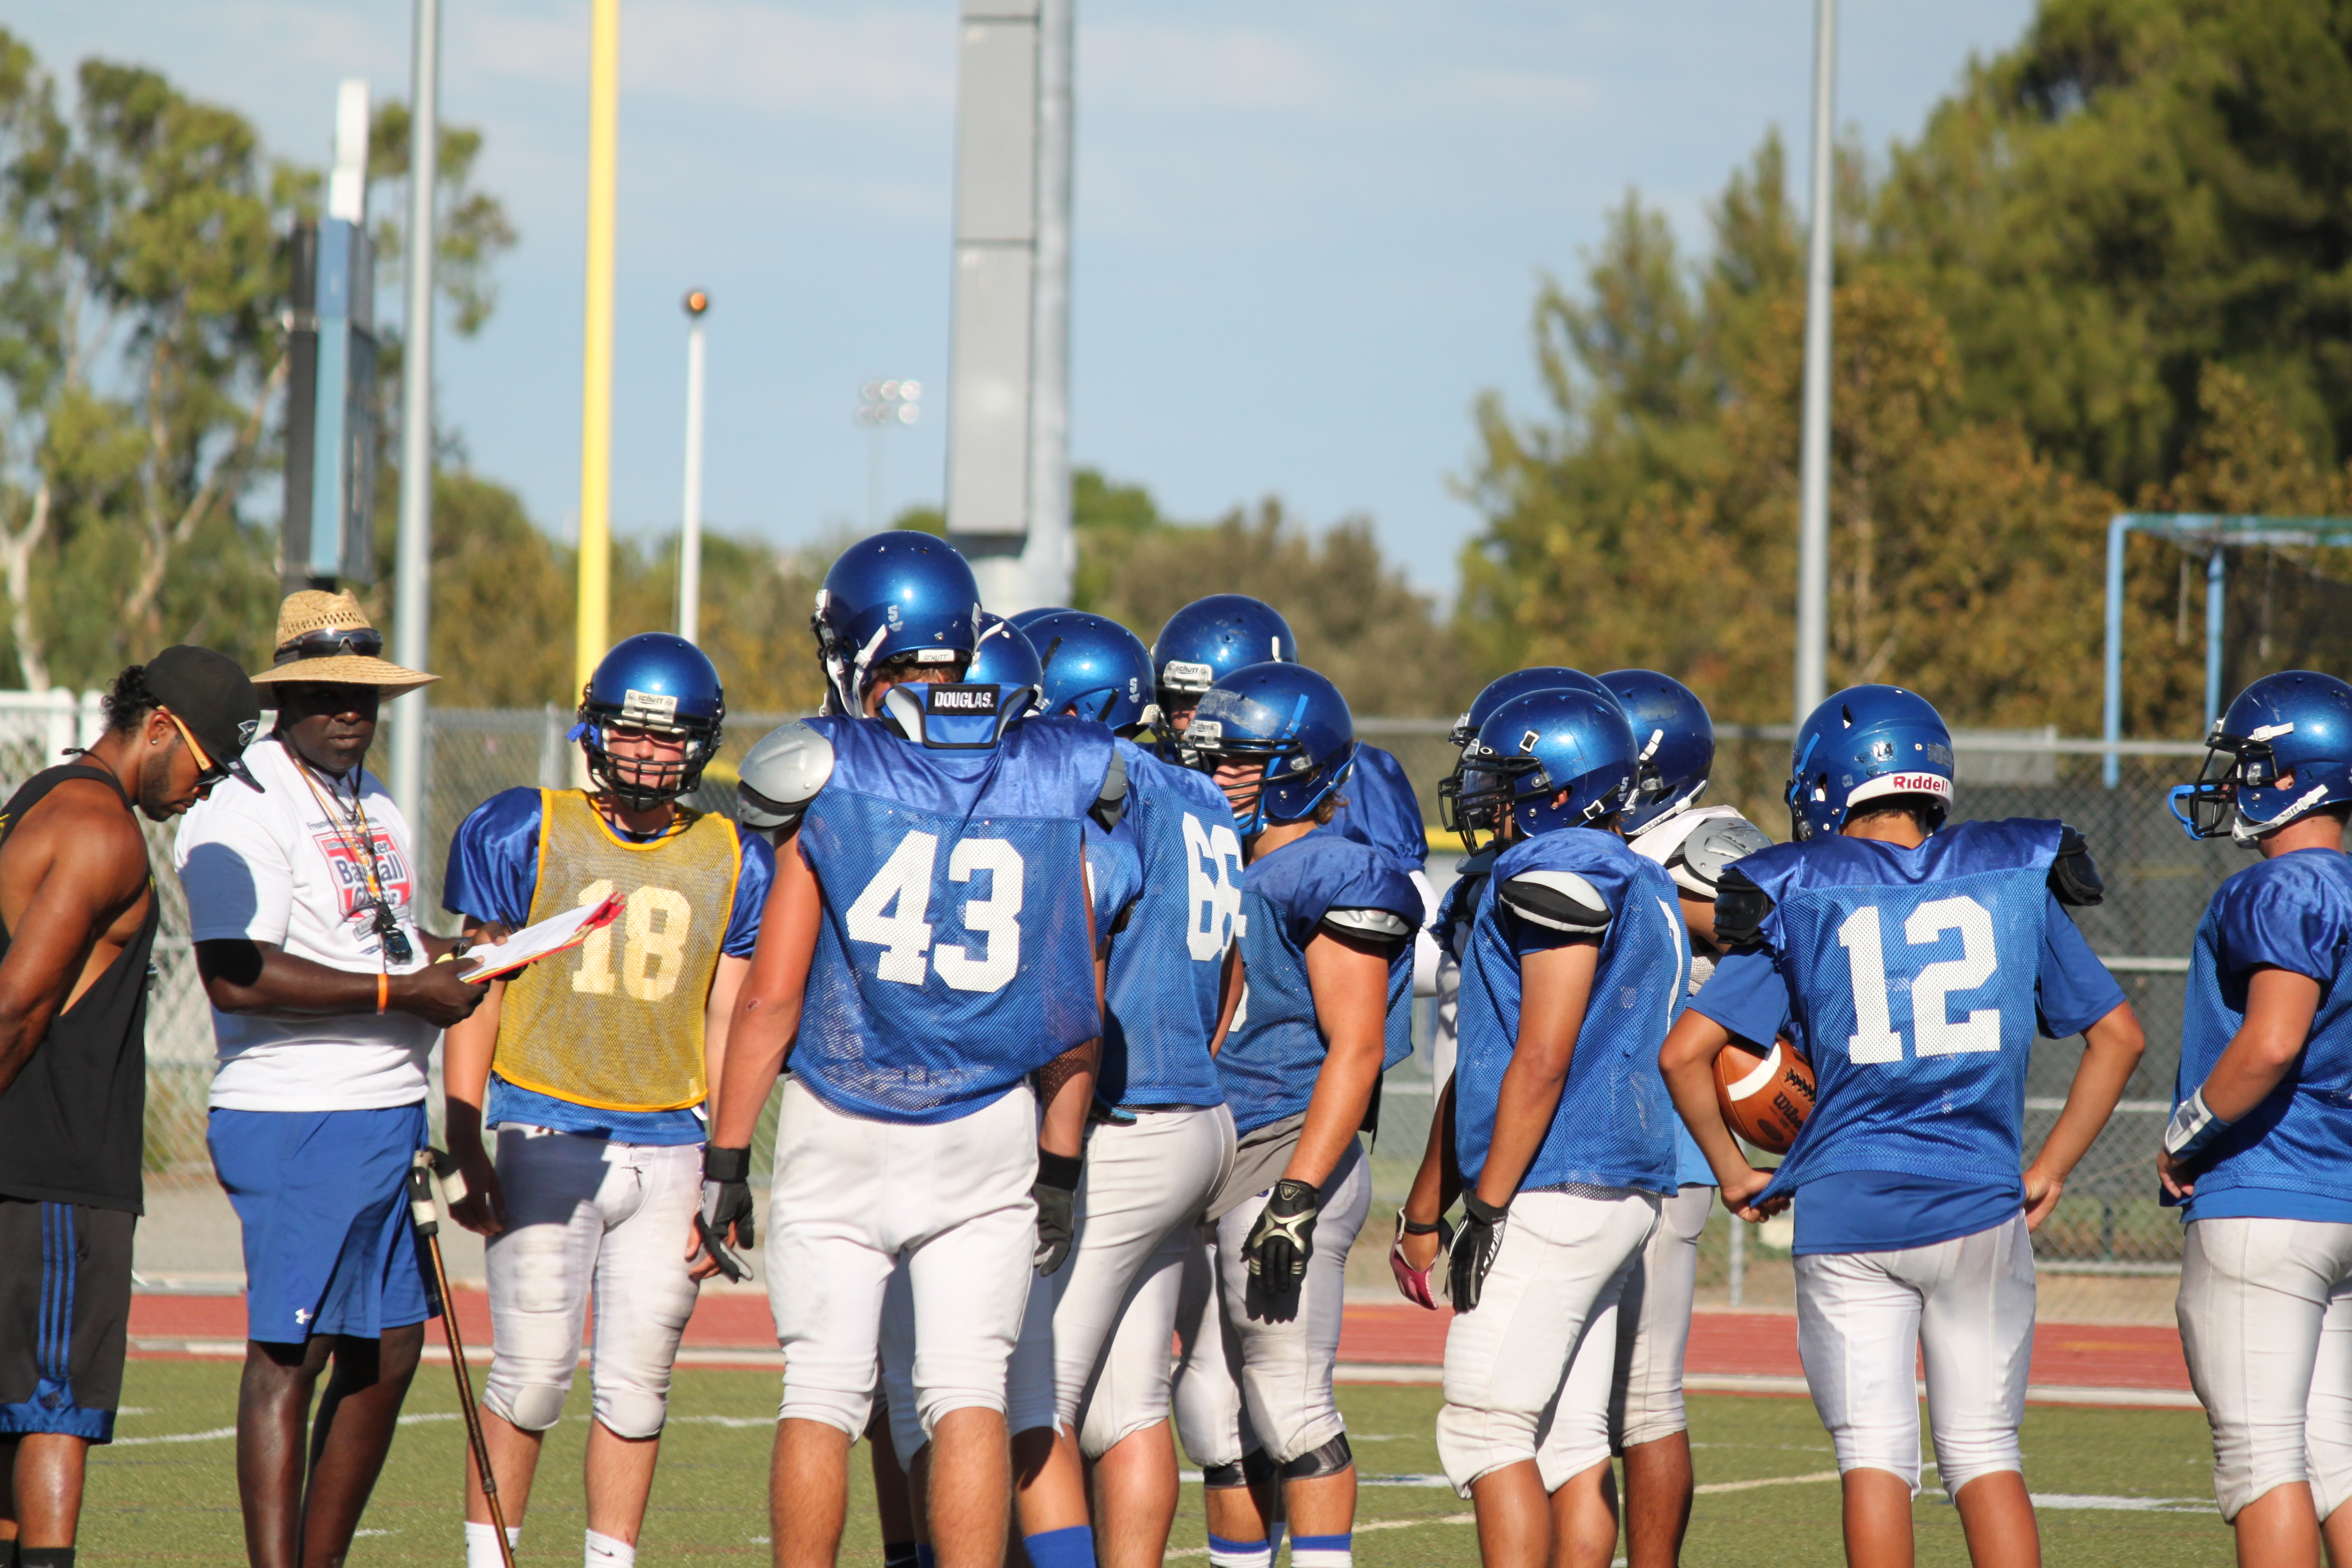 Varsity practiced on Aug. 30 and have been practicing for their big homecoming game on Oct. 11.